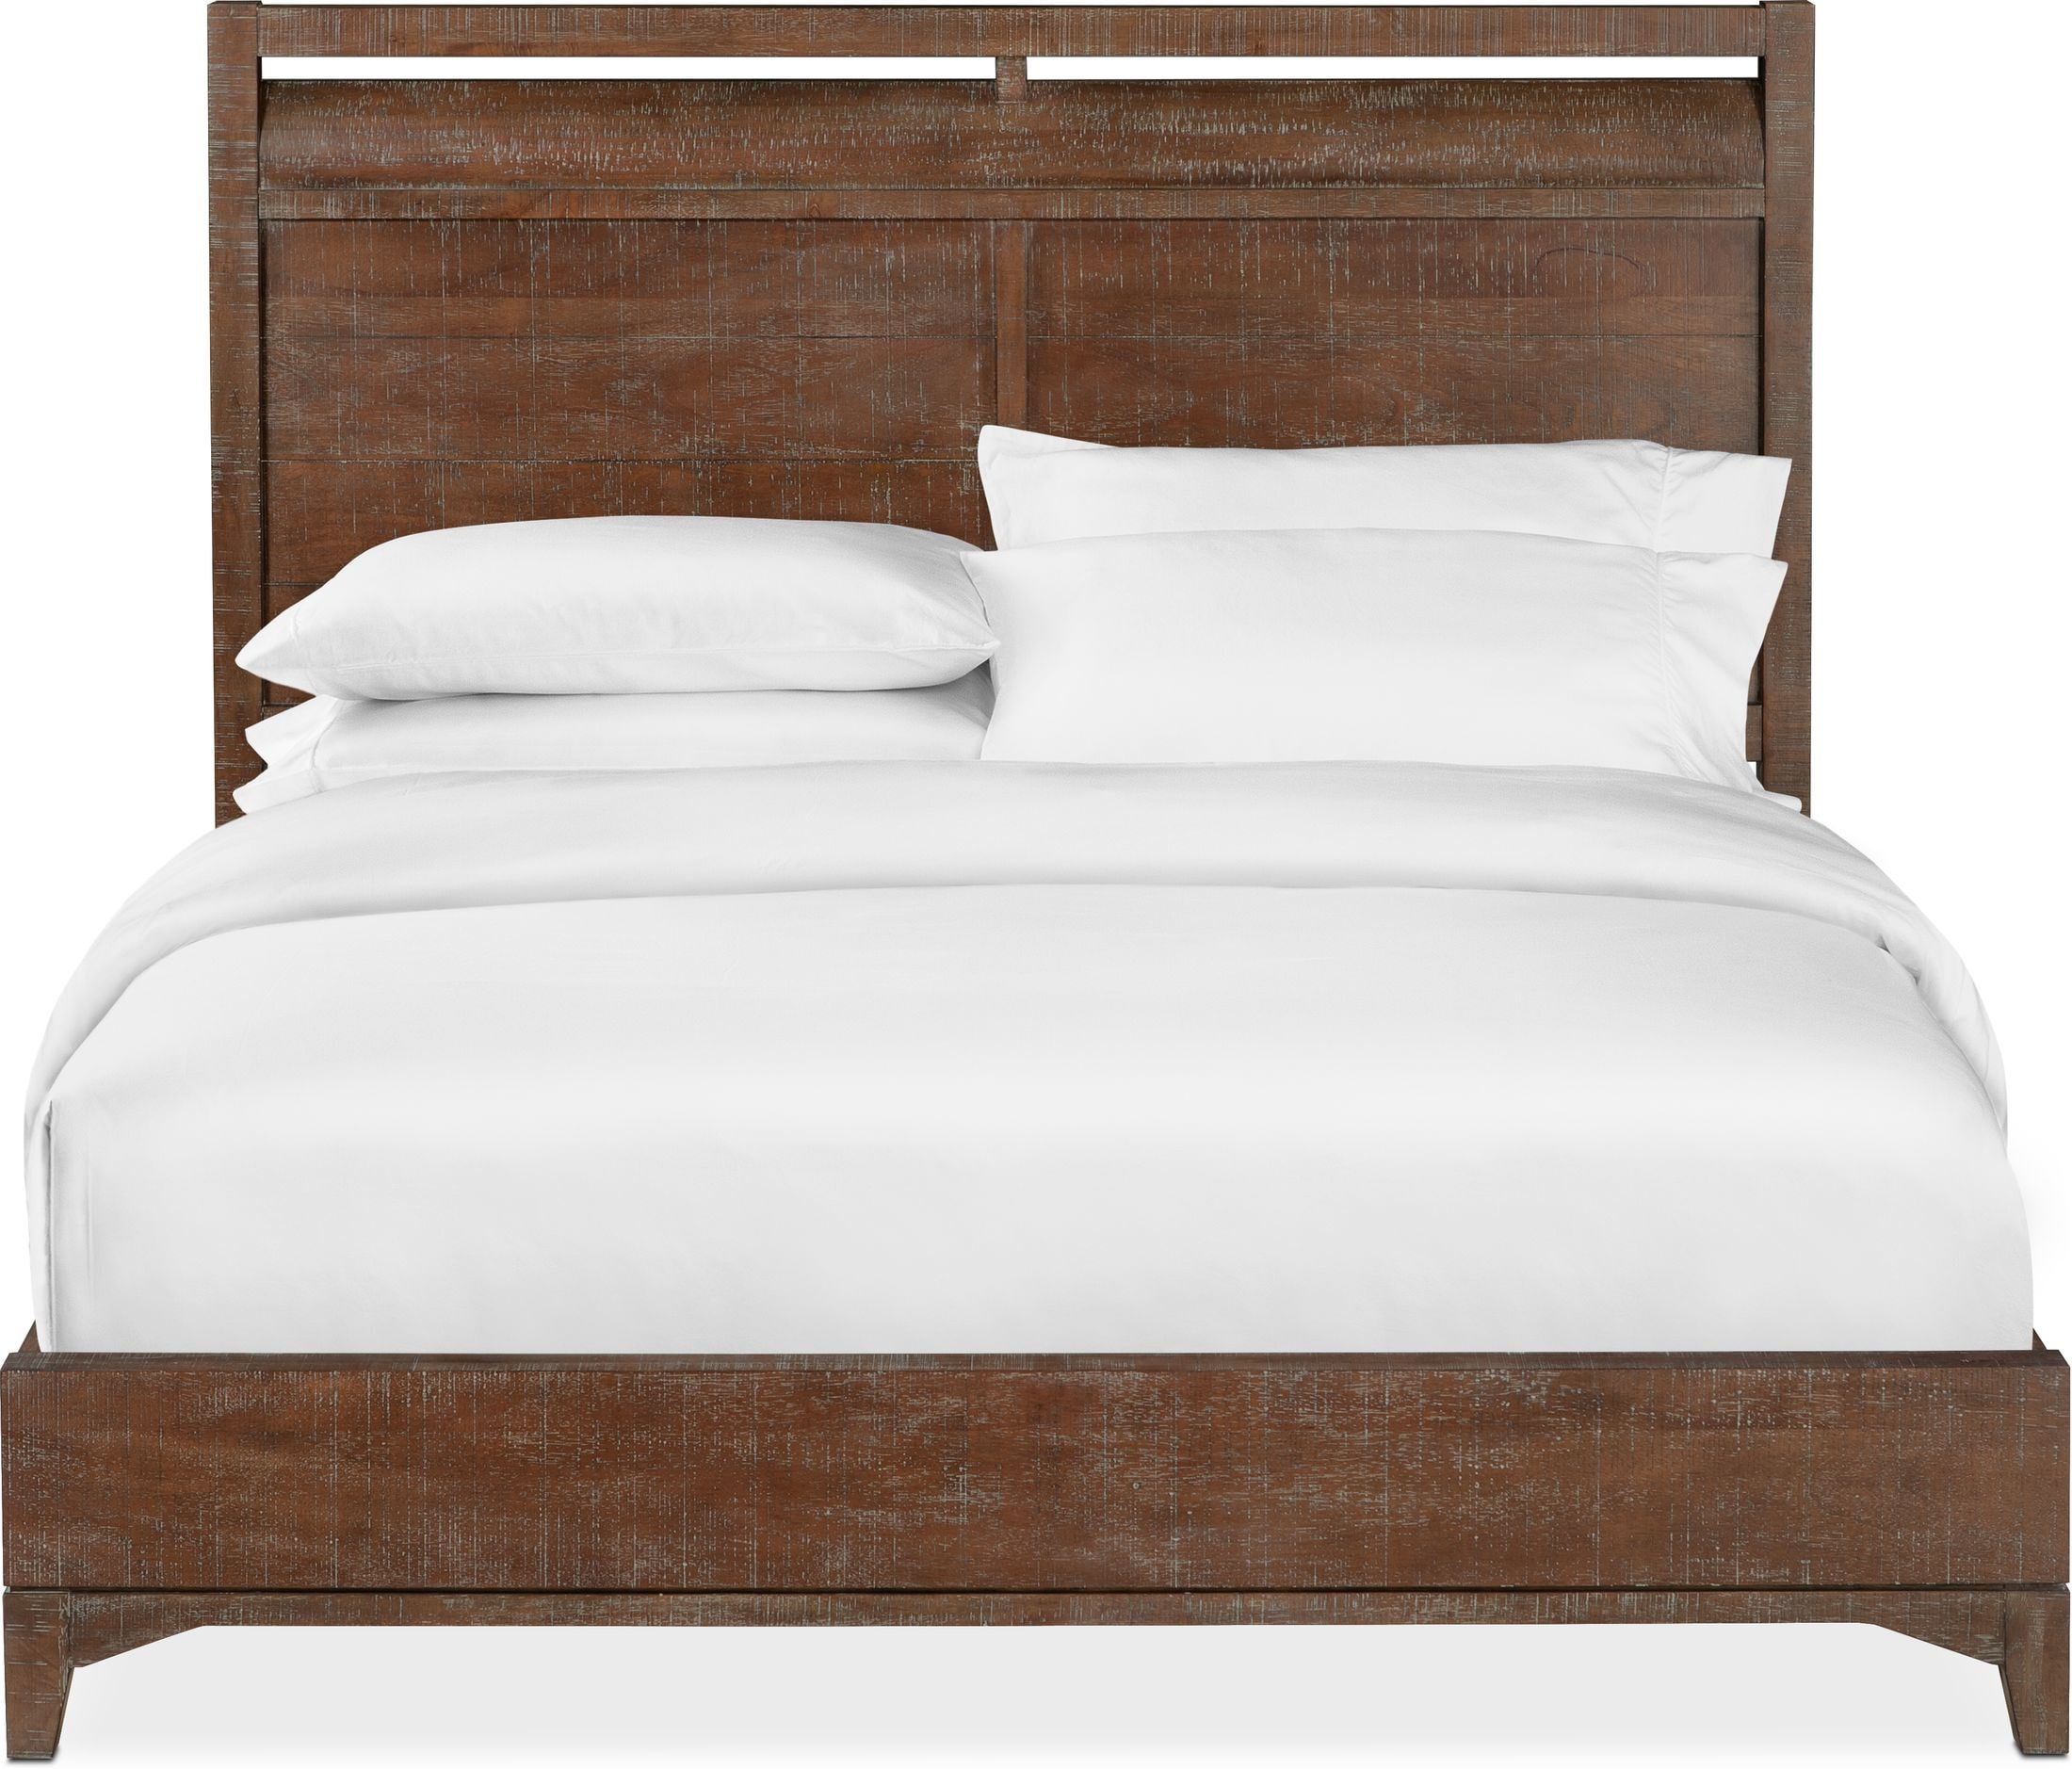 Bedroom Furniture - Gristmill Bed